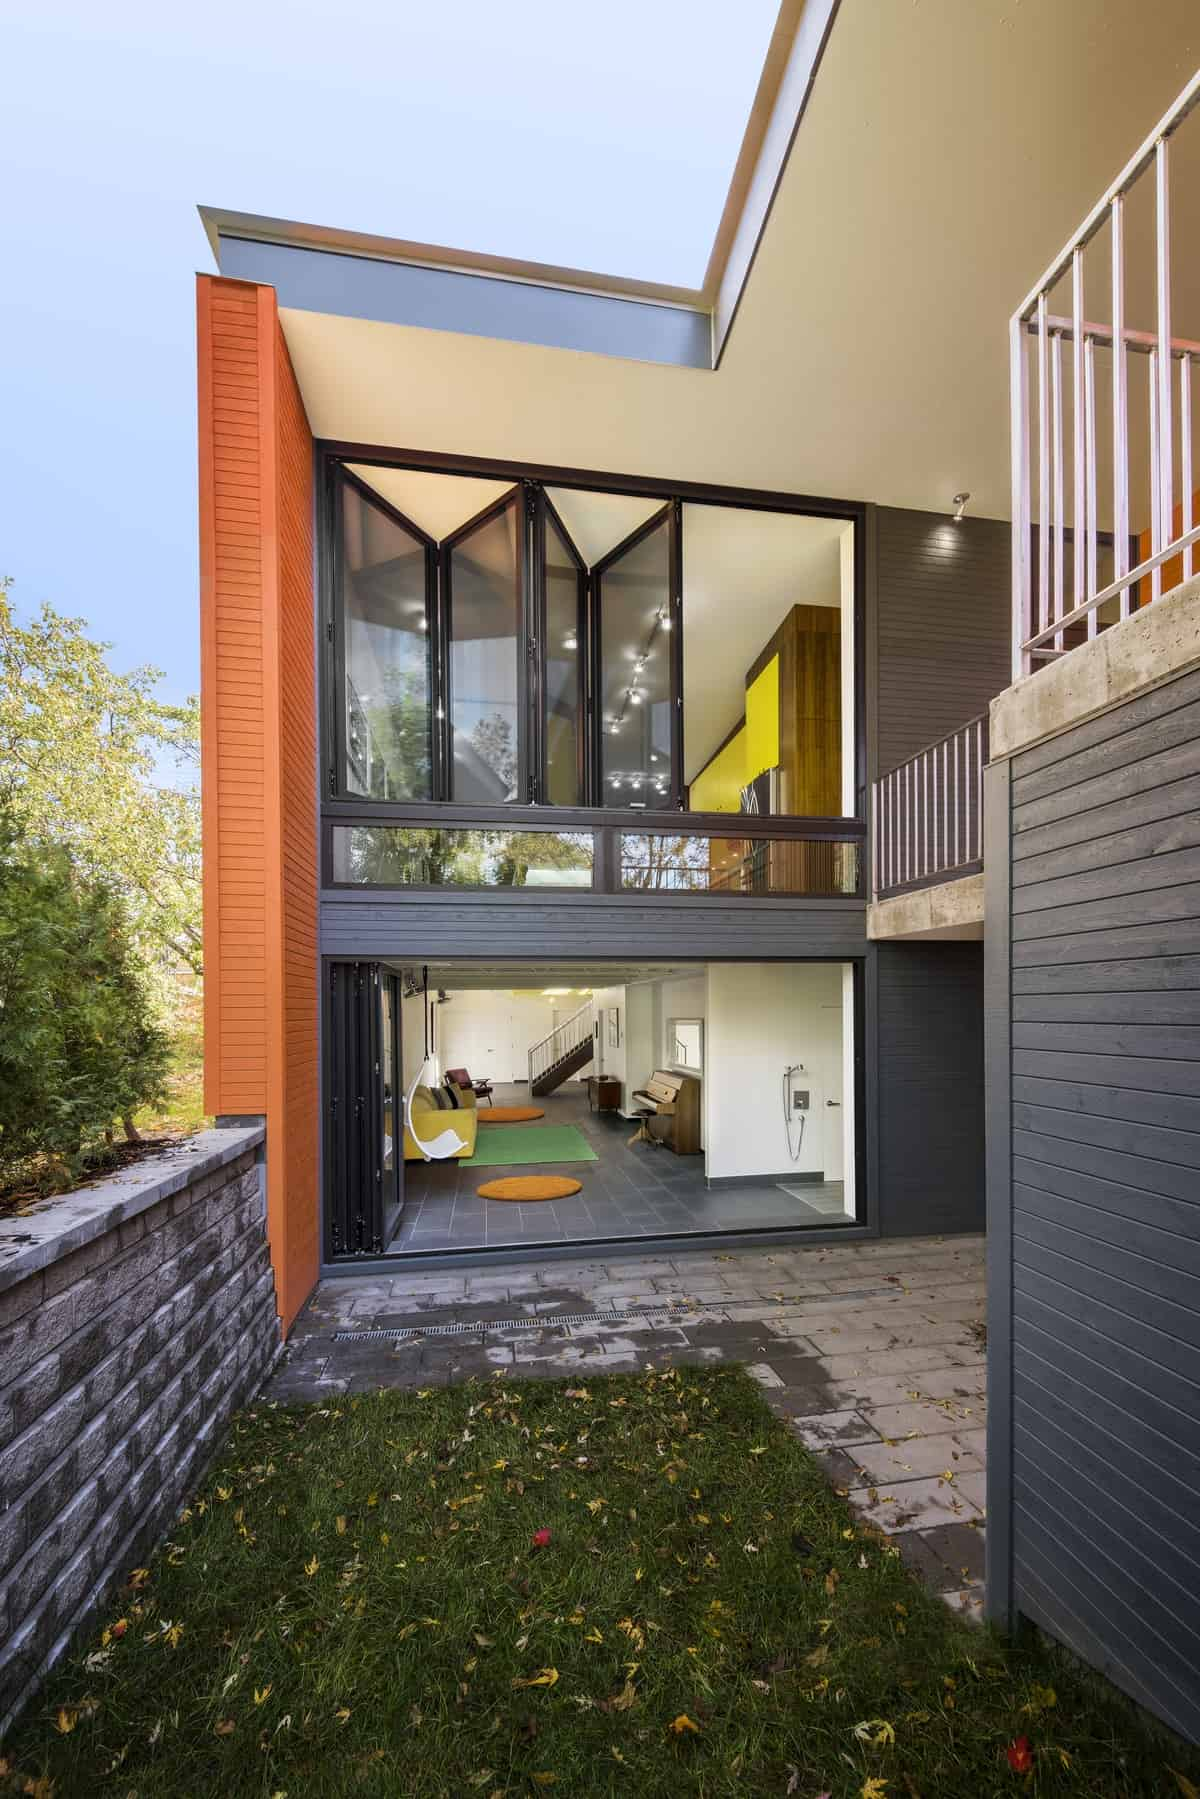 skinny house on narrow lot maximizes space and daylight